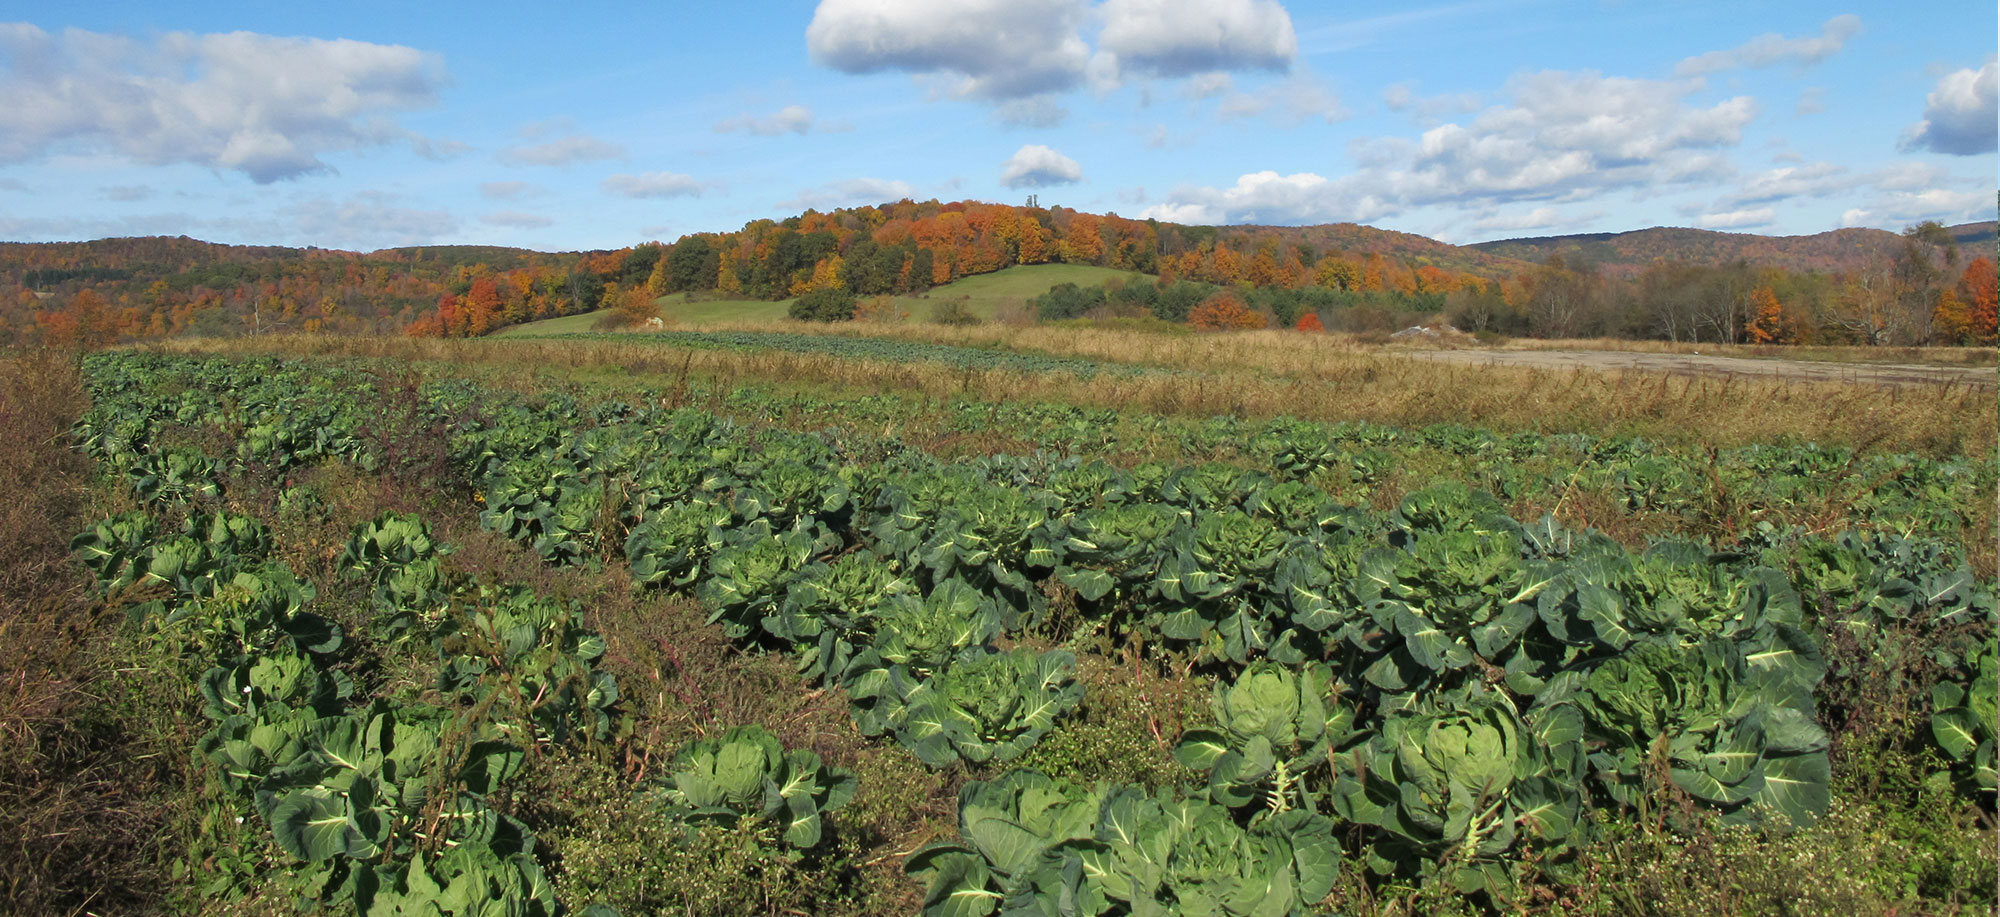 Most of Our Compost is Used on Our Own Fields